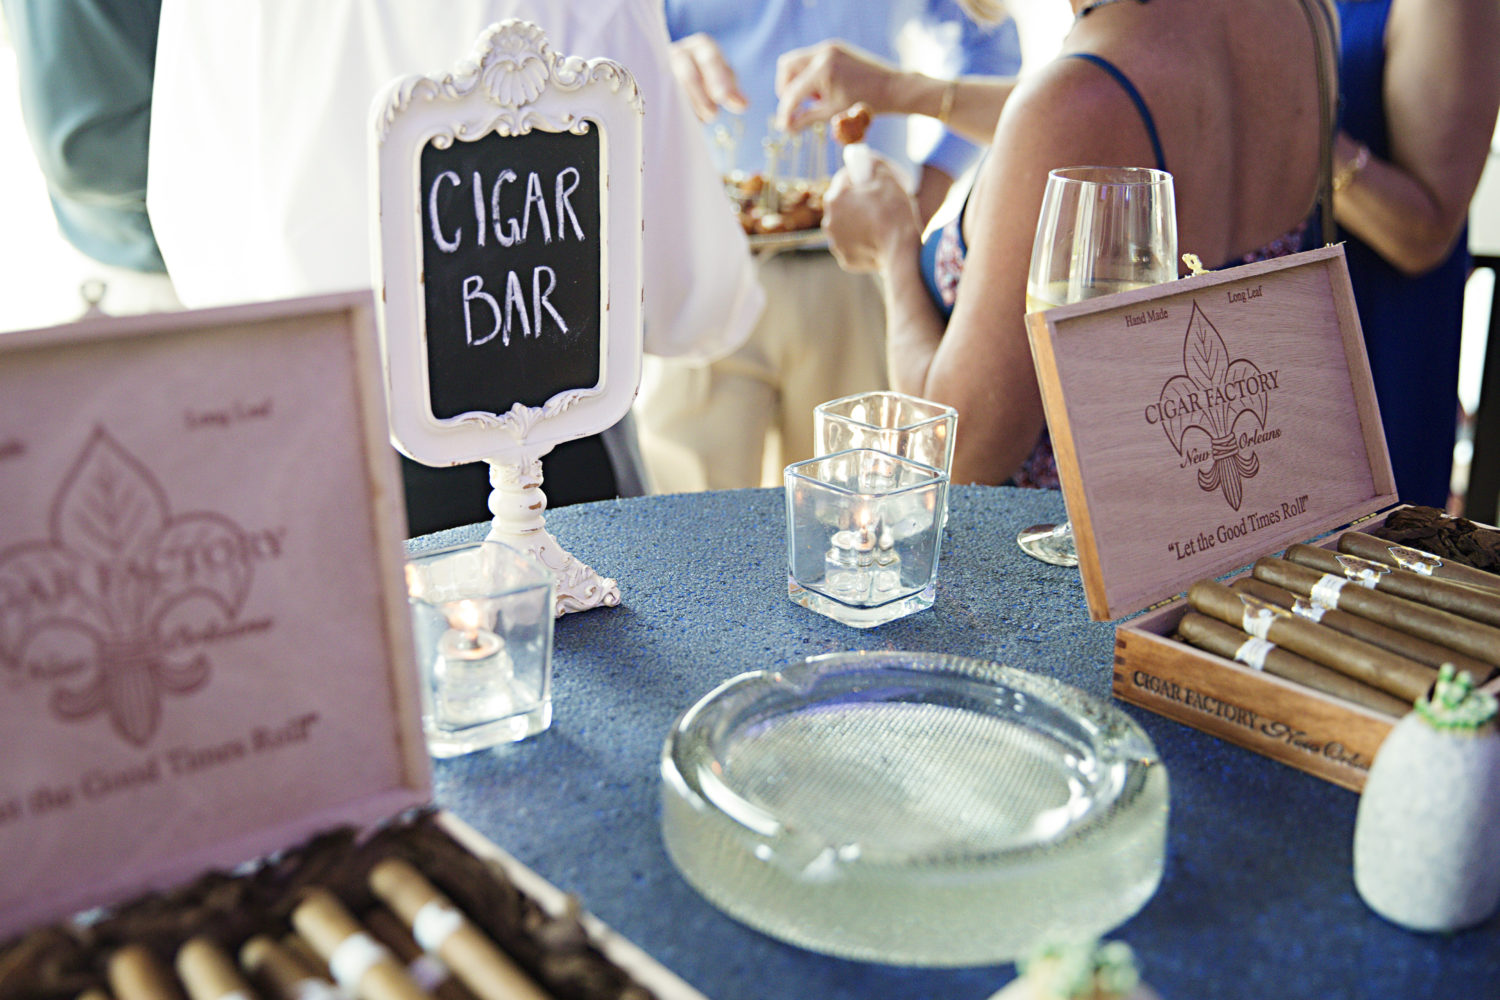 cigar bar wedding favors